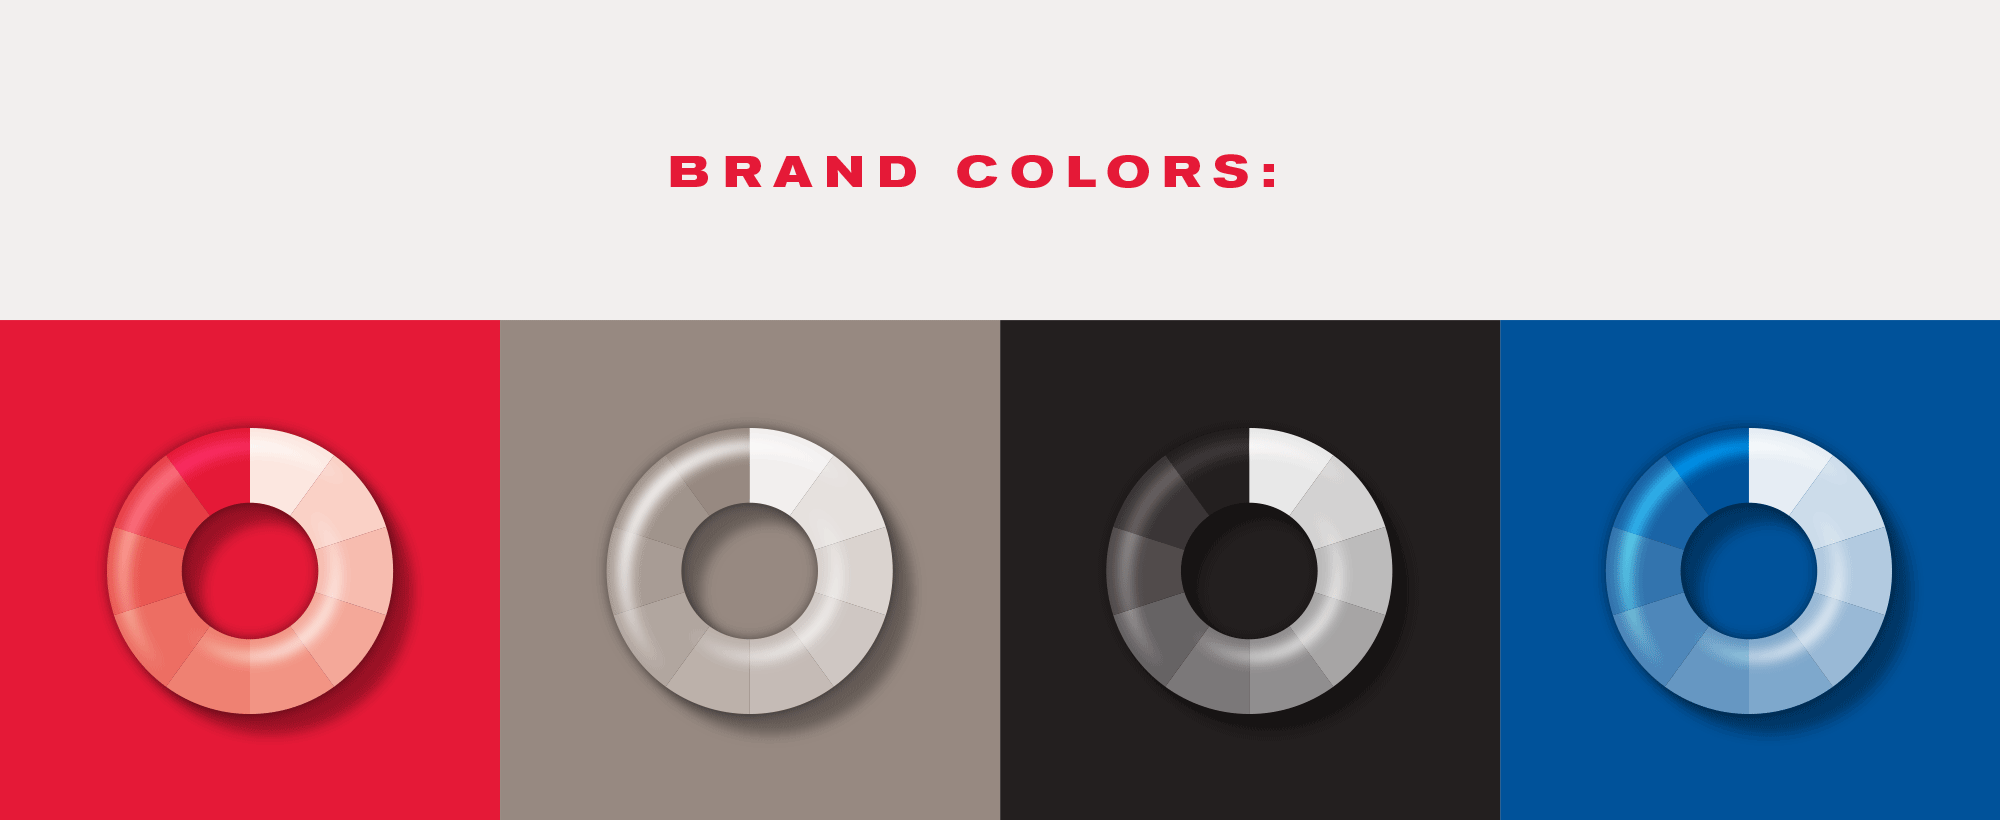 Artur brand color palette